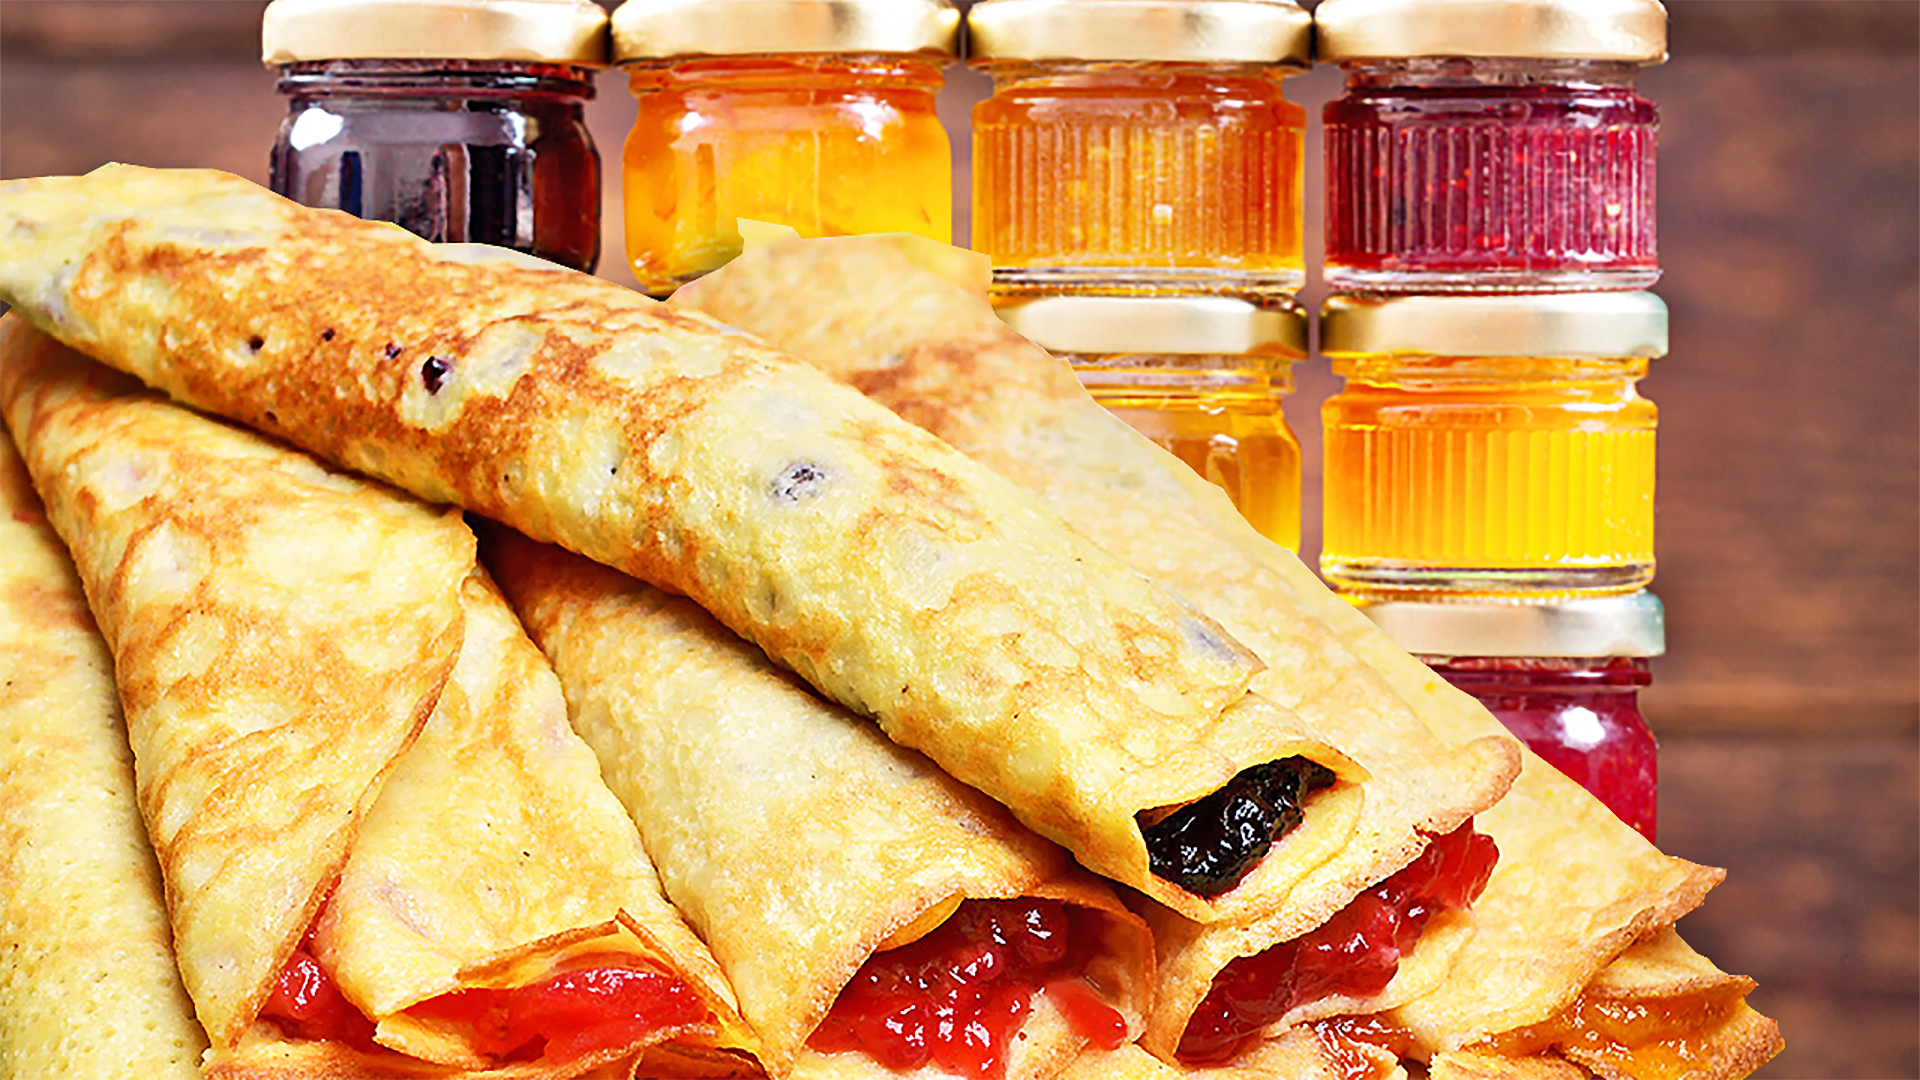 Savory Crepes Recipe - Easy Homemade Crepes with Jam